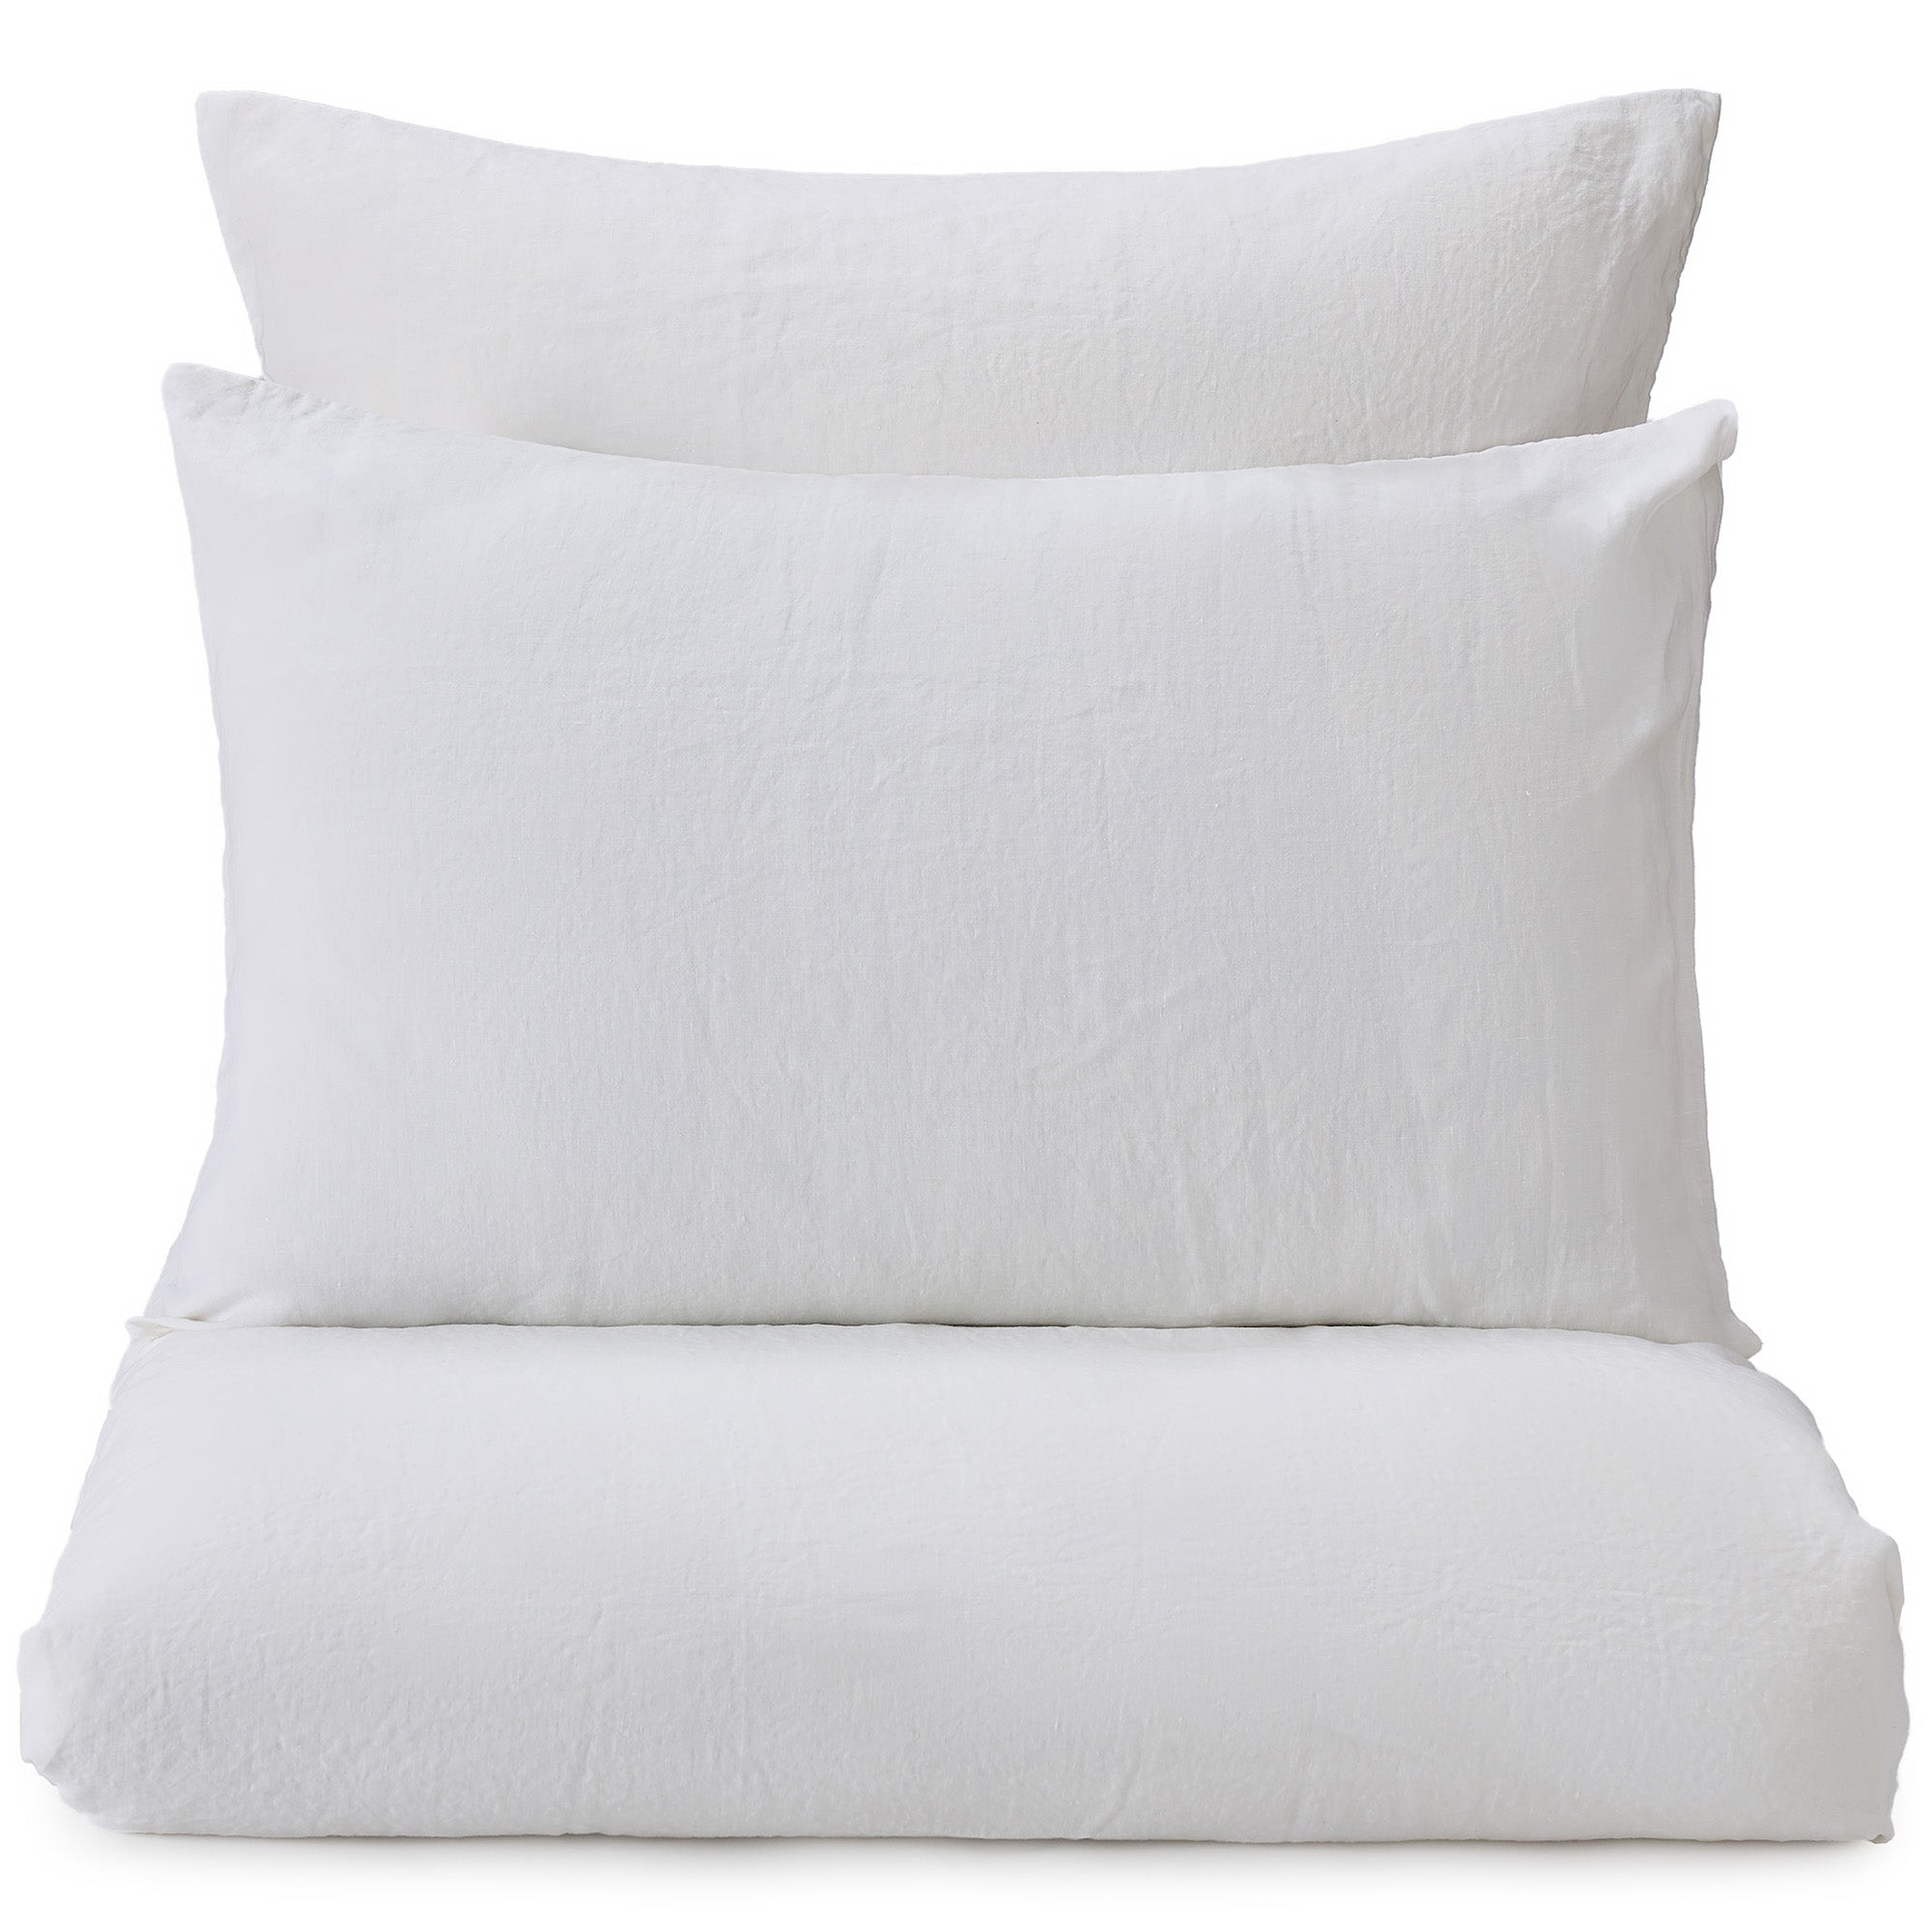 Mafalda Pillowcase [White]